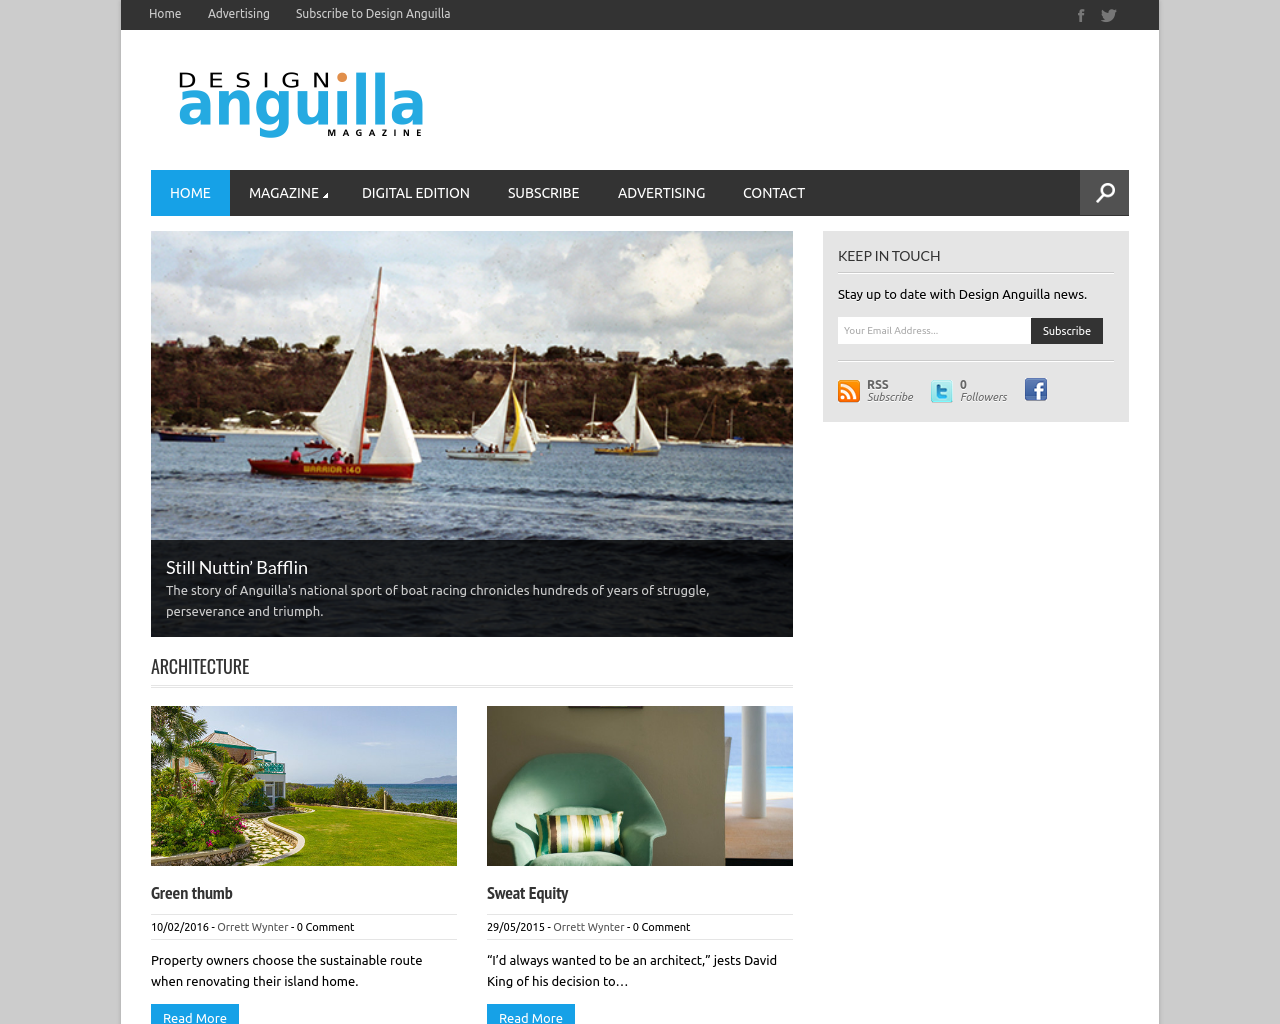 Design-Anguilla-Advertising-Reviews-Pricing